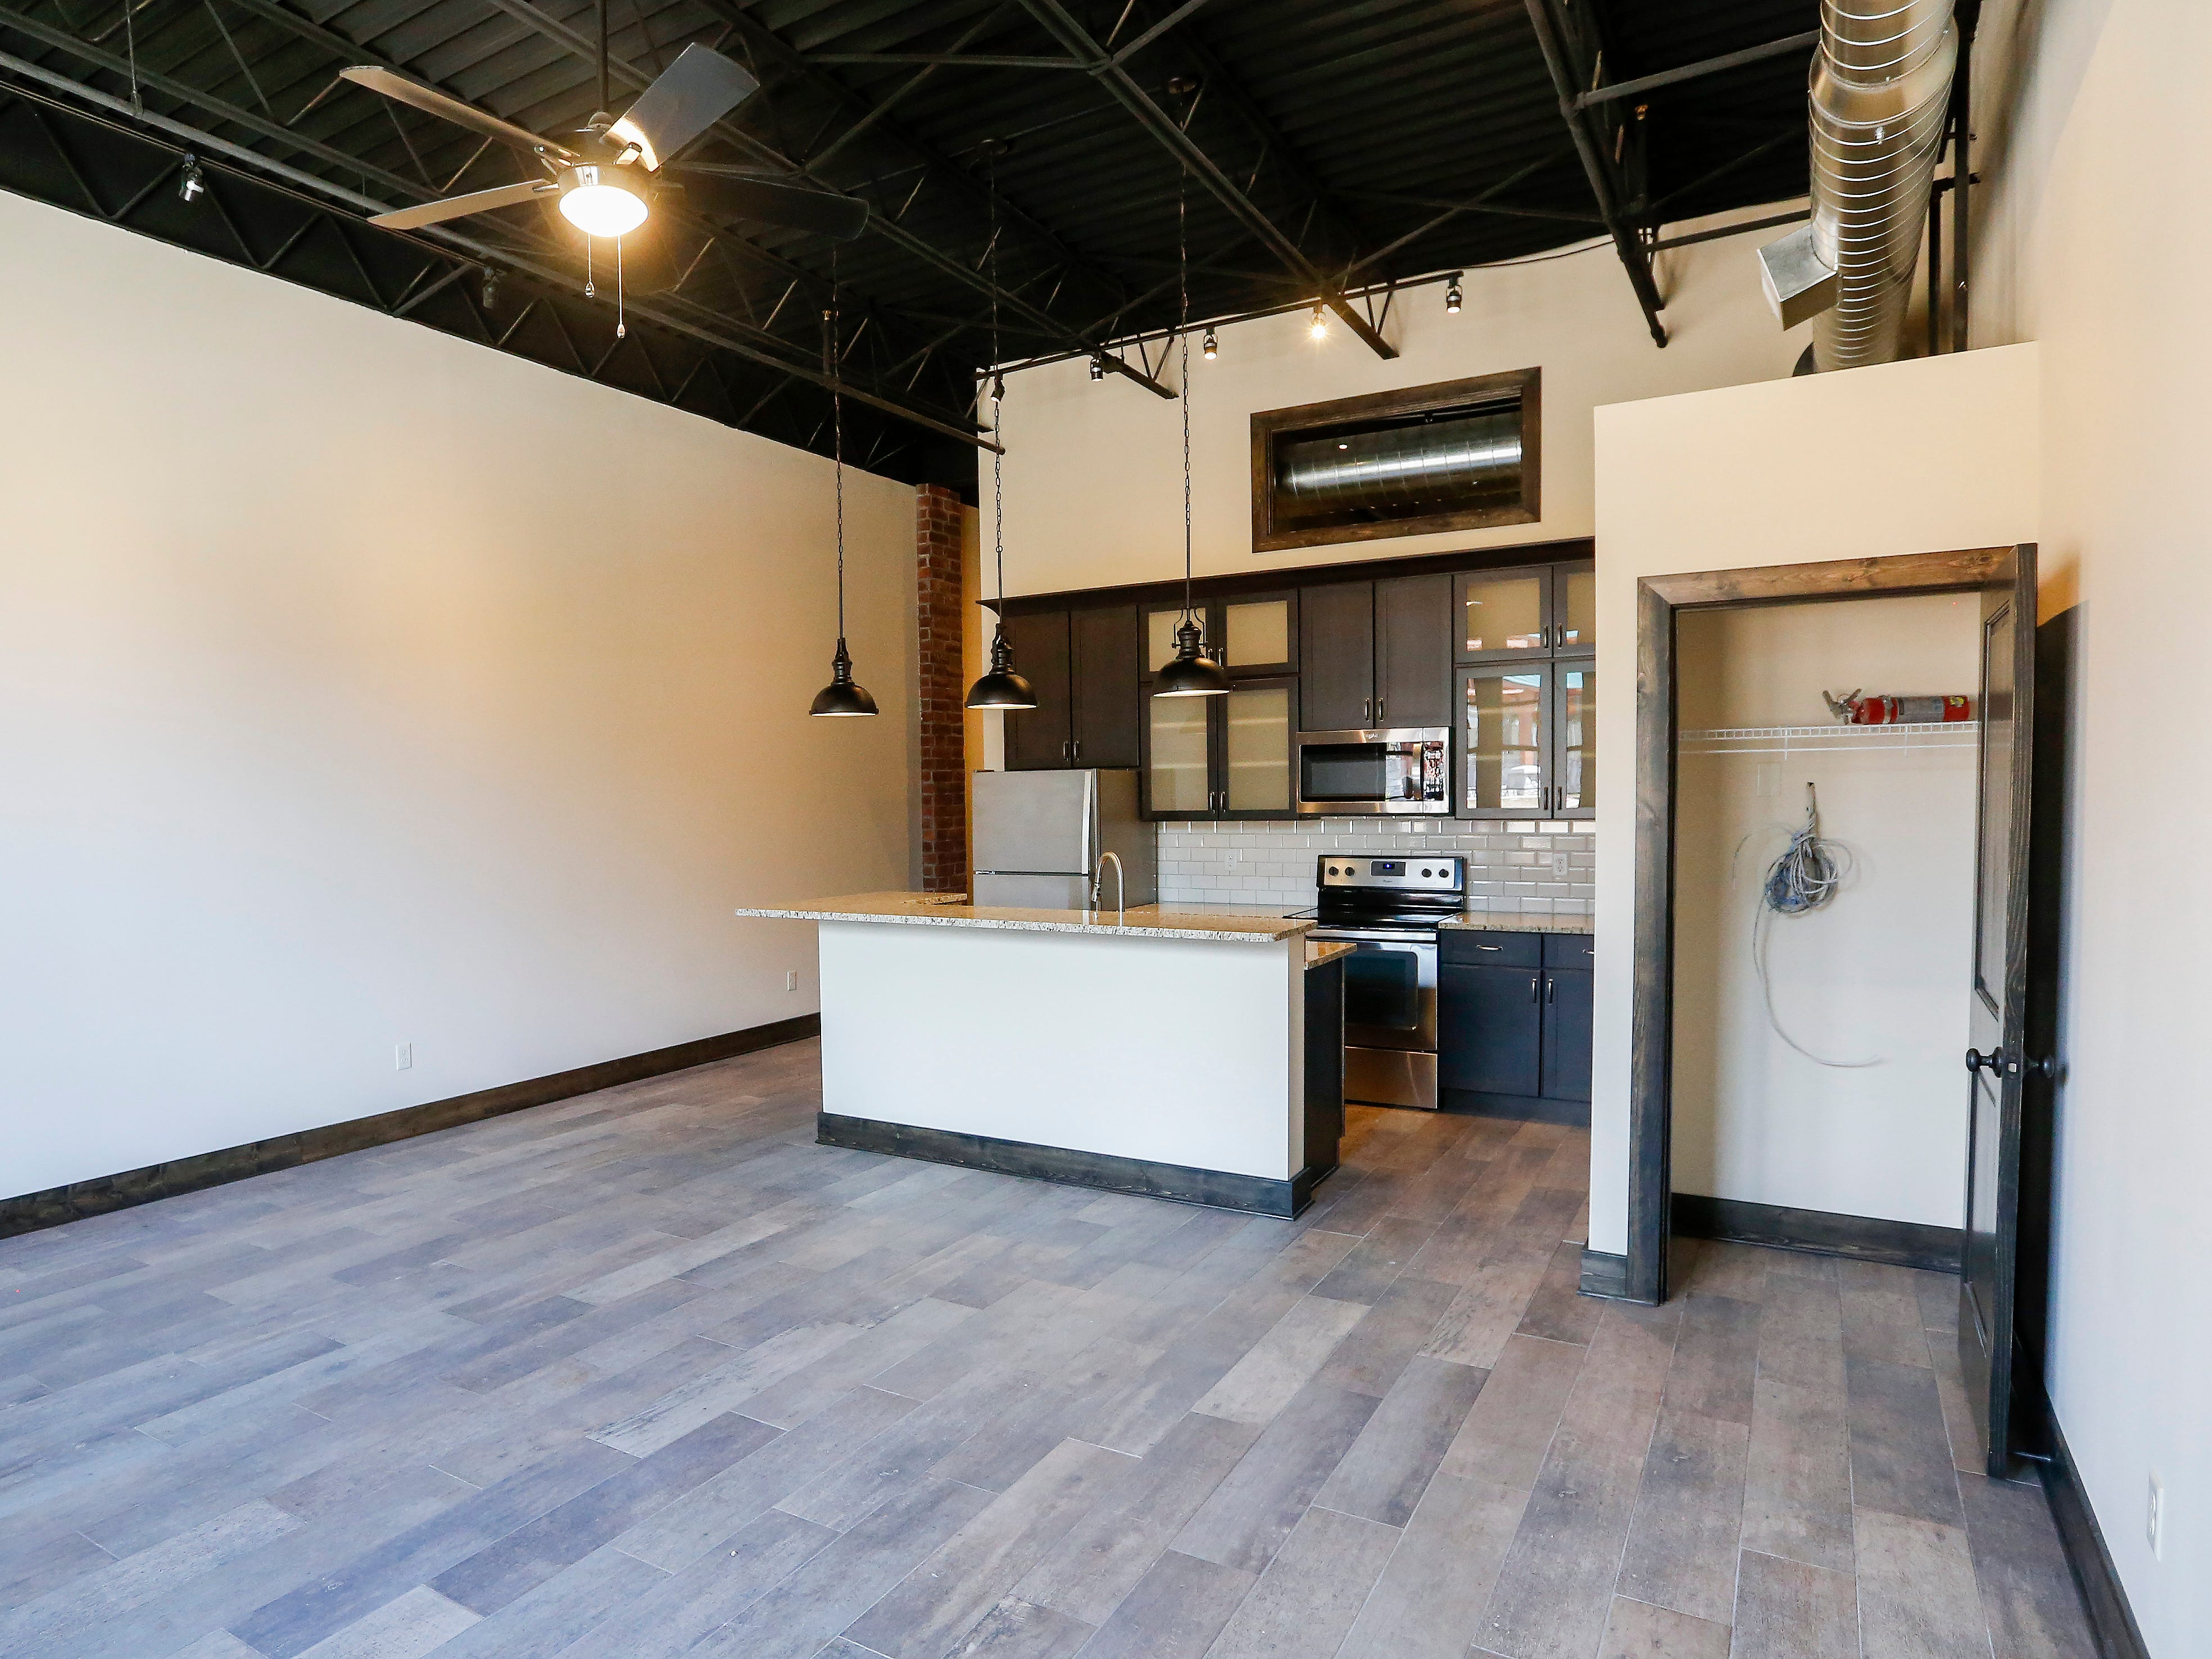 The living room and kitchen area inside one of the 2-bedroom units at the Bailey School Lofts on Central Street near Campbell Avenue.